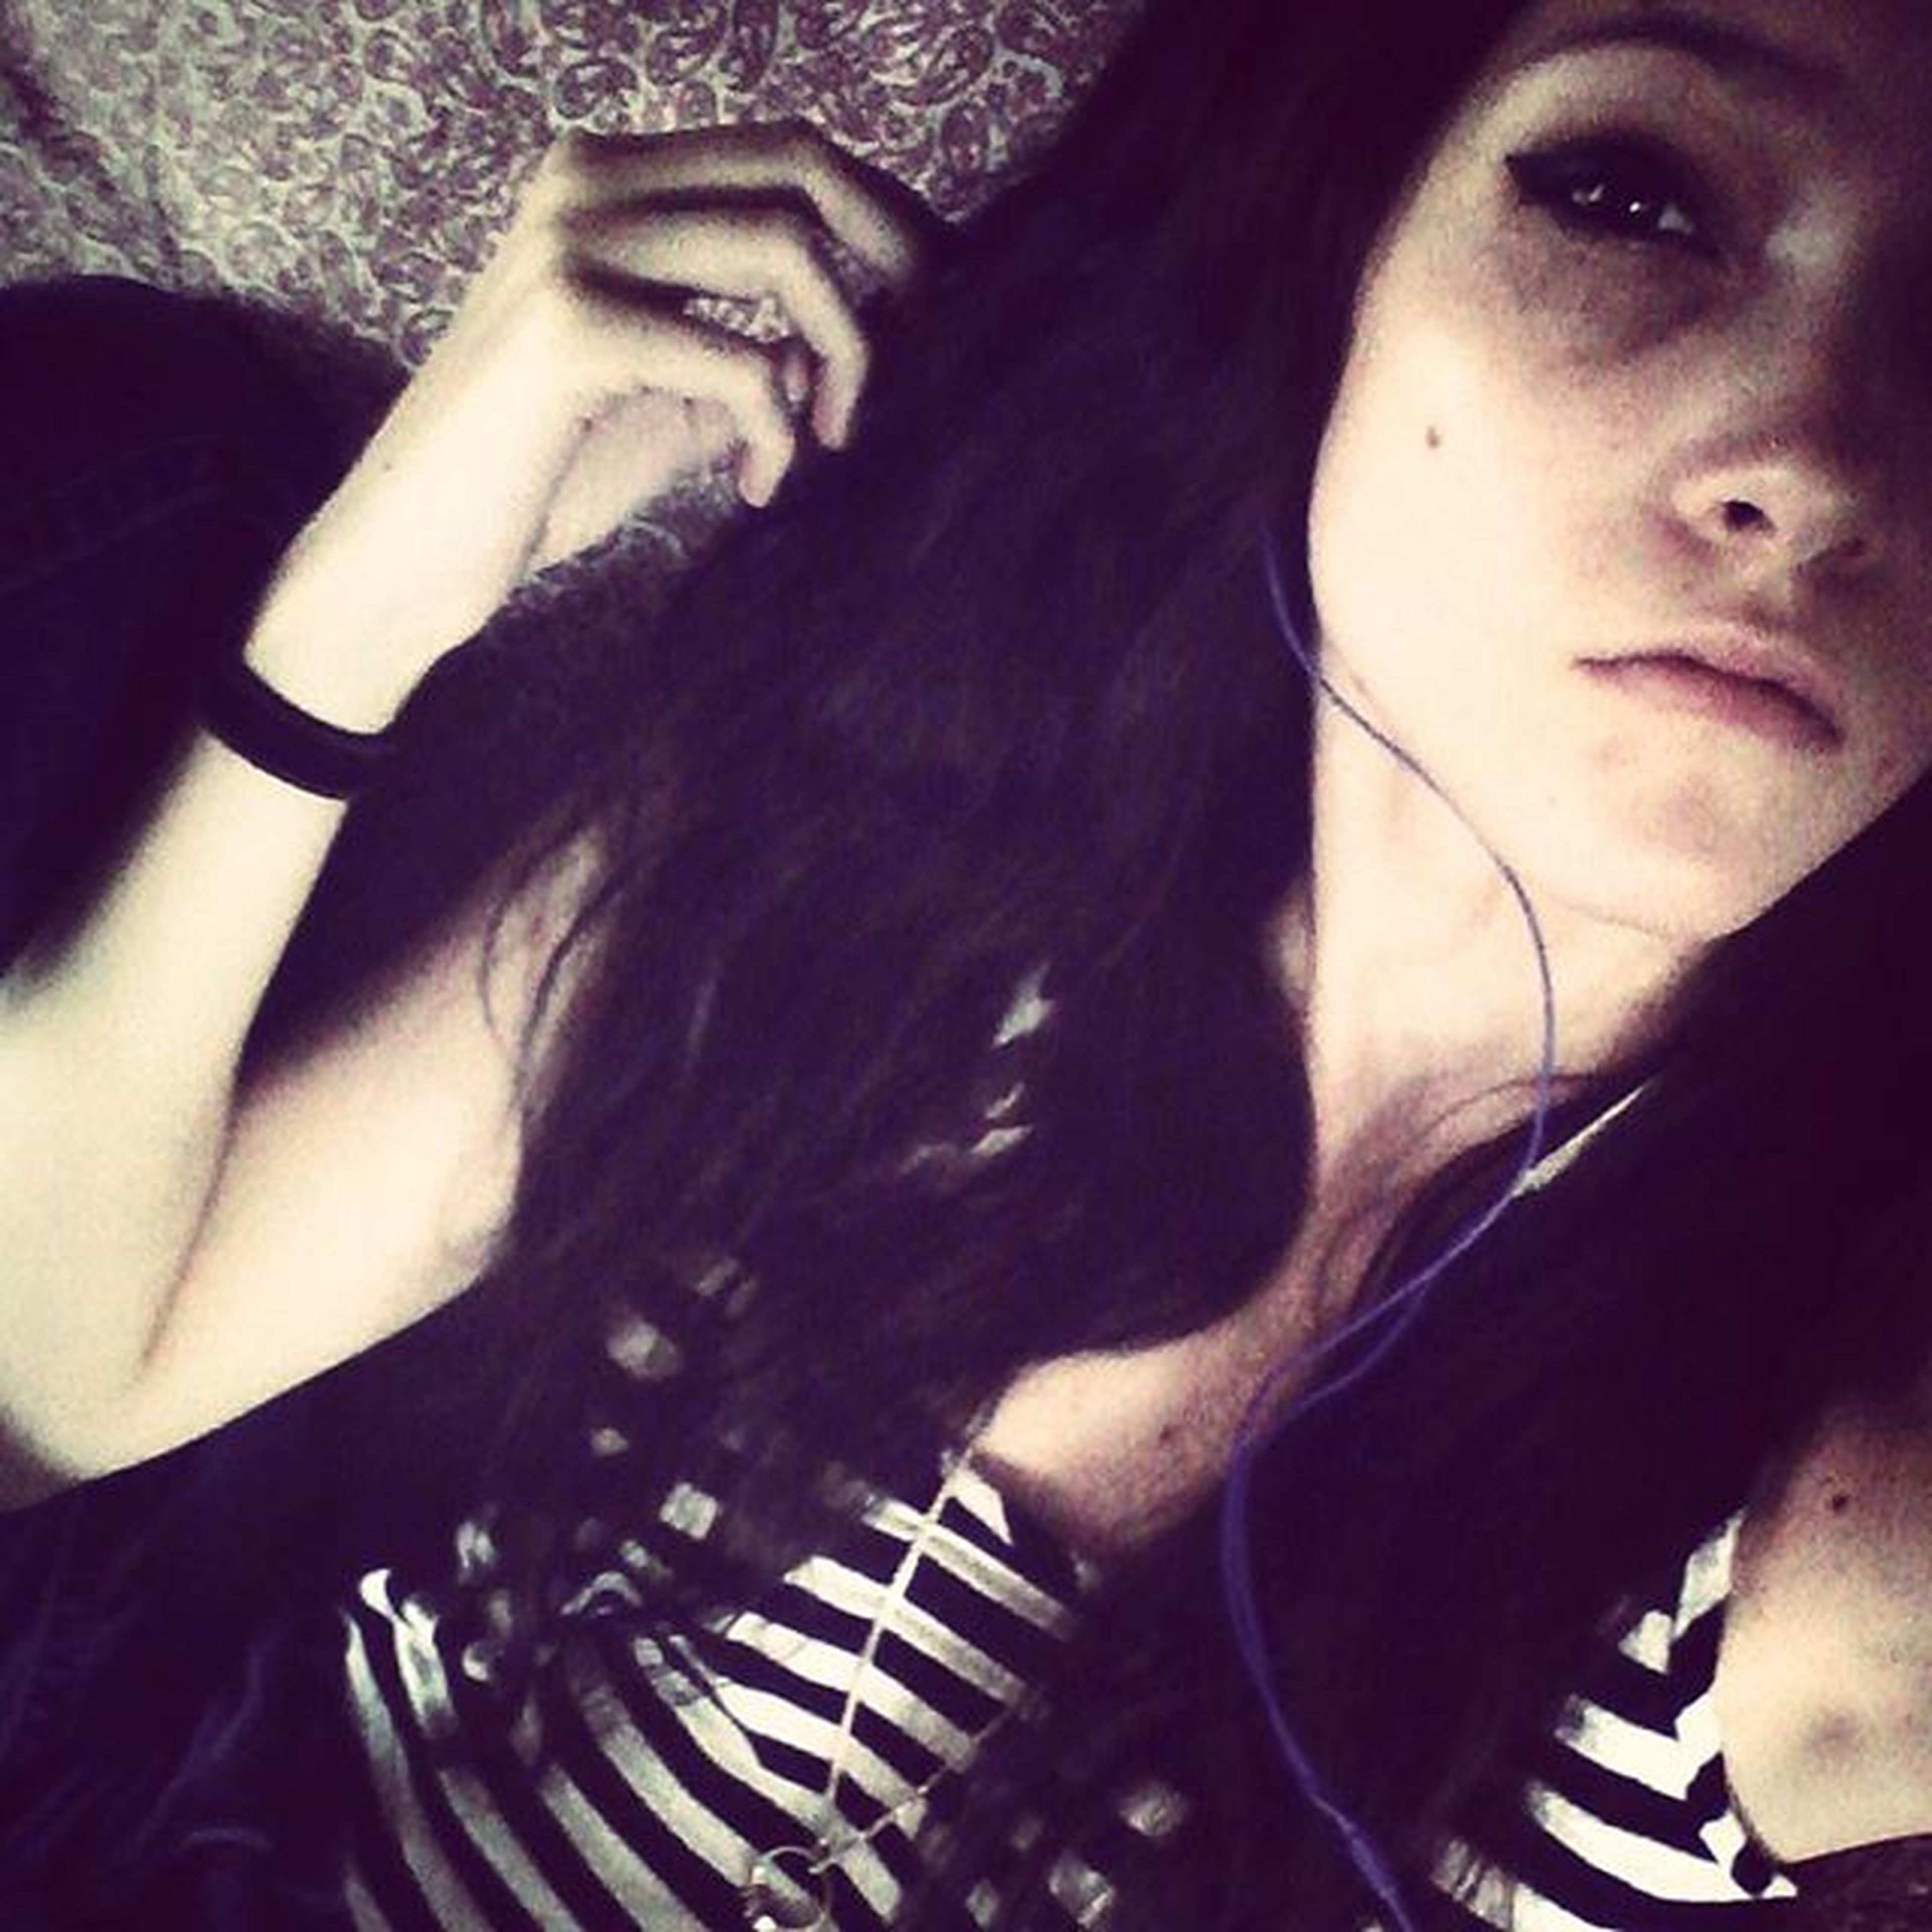 It hurts but eventually your pain fades, when you play cod all day and rage 😁 Wanna play? DM or comment psn. Pain Gone Smiles Toofunny TooCute AnotherDay Loveit Skinandbones Music Longhair Damnedifyoudo Damnright Blackops2 CallOfDuty Hmu LOL Me Bo3 Ps3 Gamergirl Gamer Boss